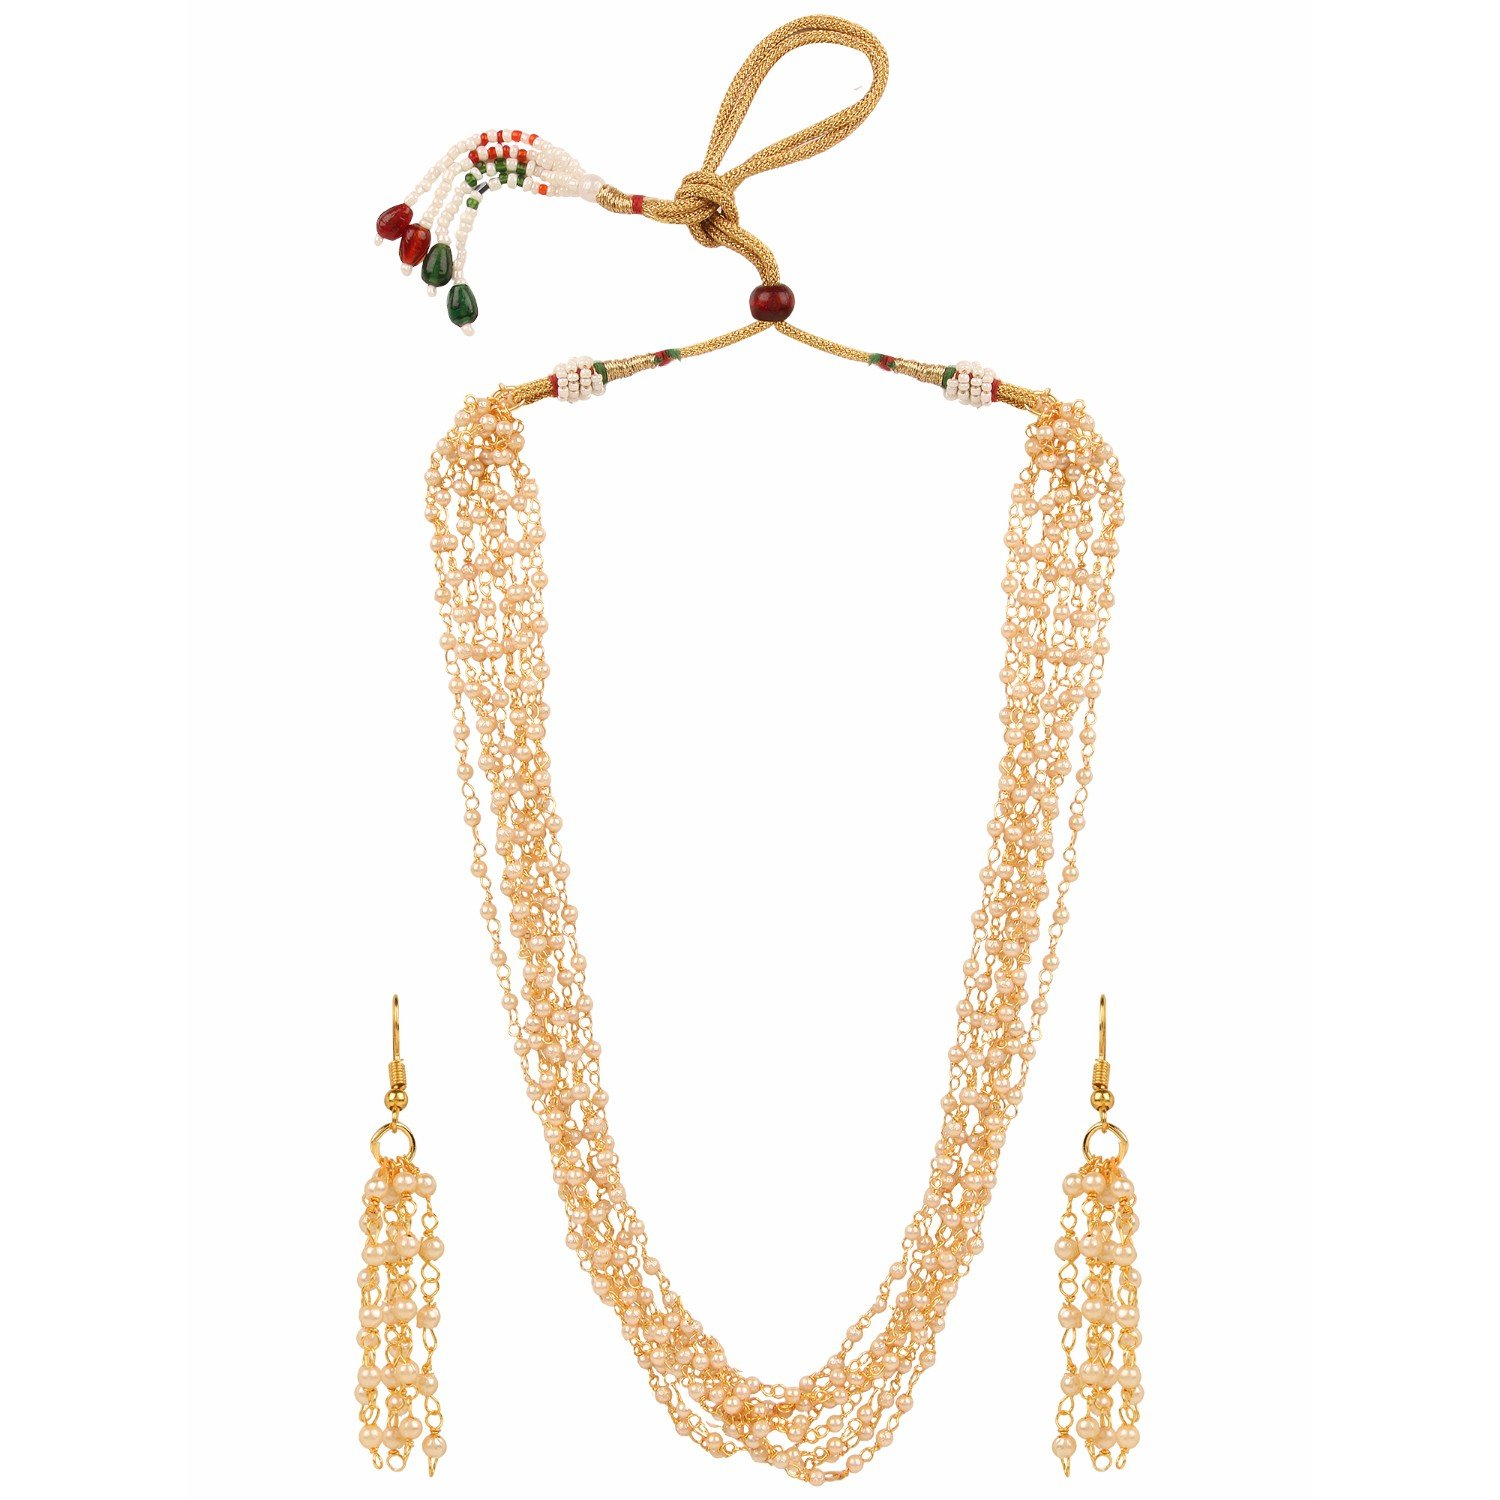 Indian Traditional Gold Plated Multi Pearl Strand Necklace Jewelry Set with Earrings for Girls & Women